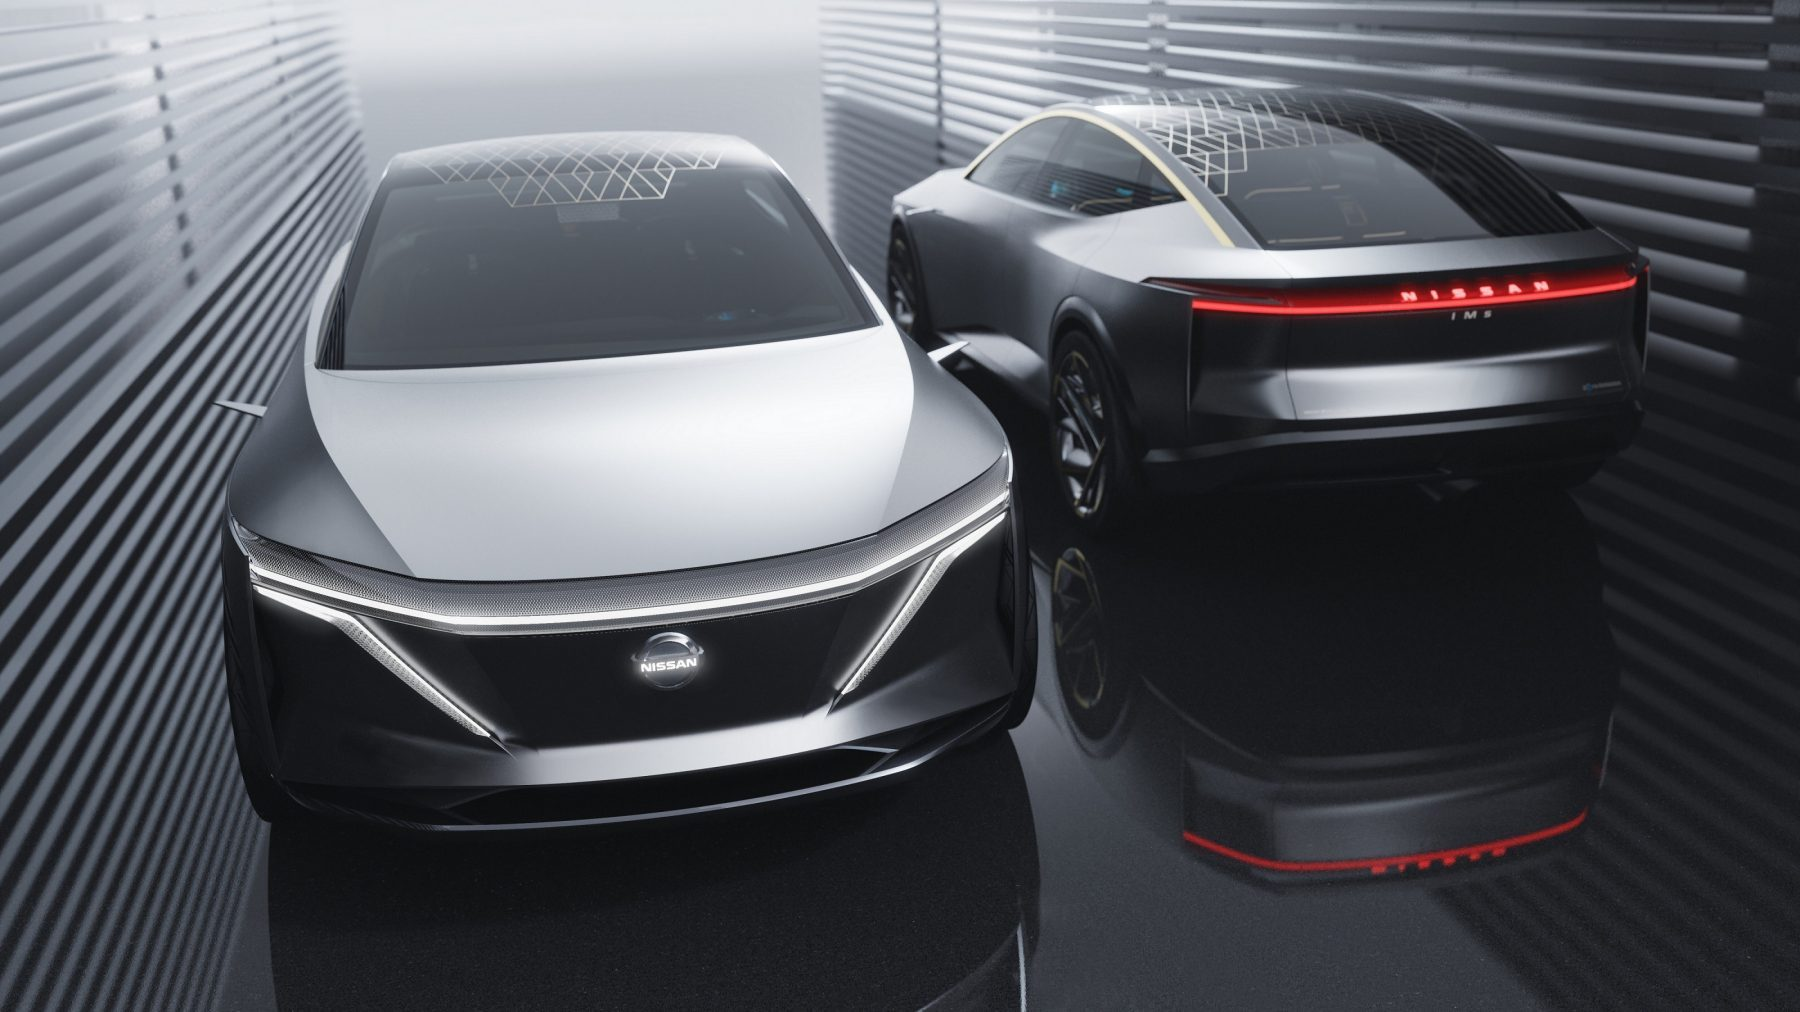 Nissan's IMs concept: Introducing the 'elevated sports sedan'